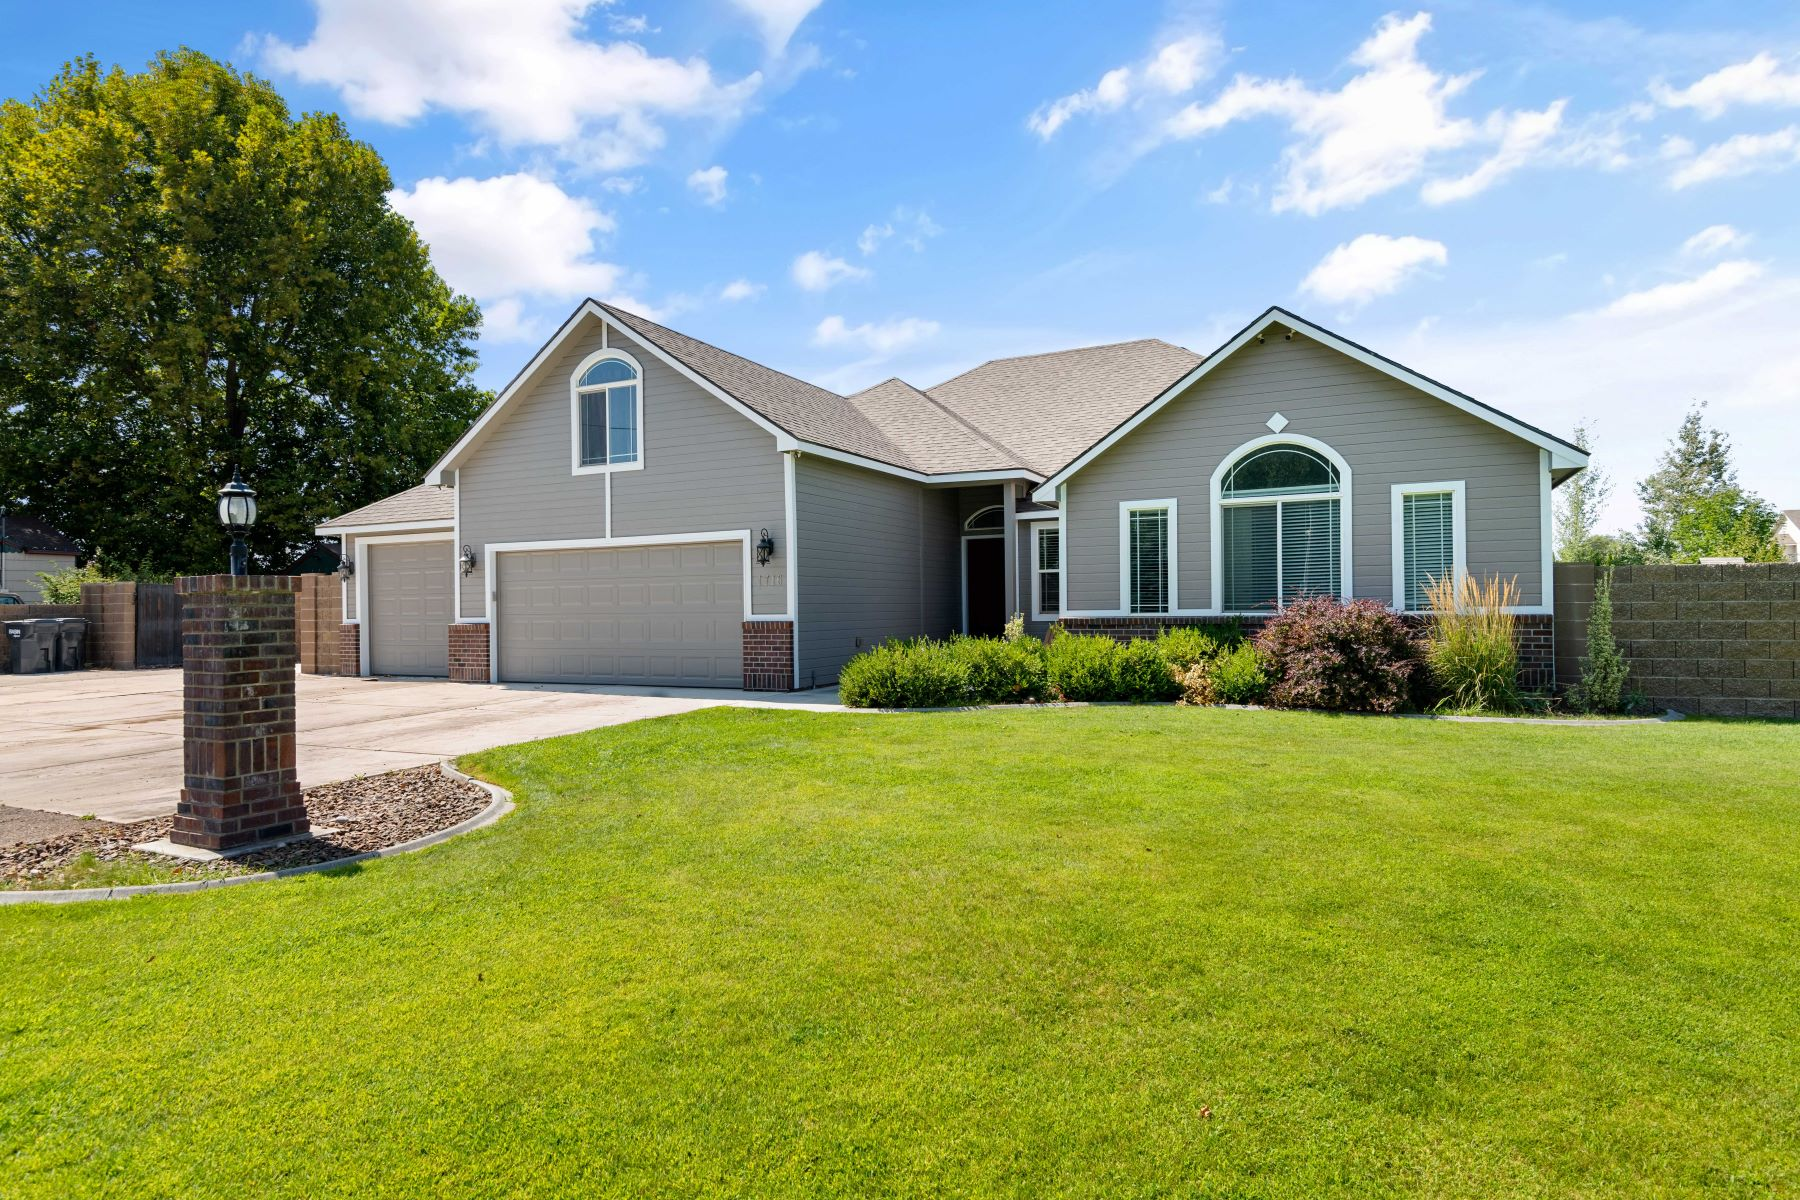 Single Family Homes for Sale at GIGANTIC SHOP, SALT WATER POOL AND REMODELED HOME! 1716 ROAD 56 Pasco, Washington 99301 United States